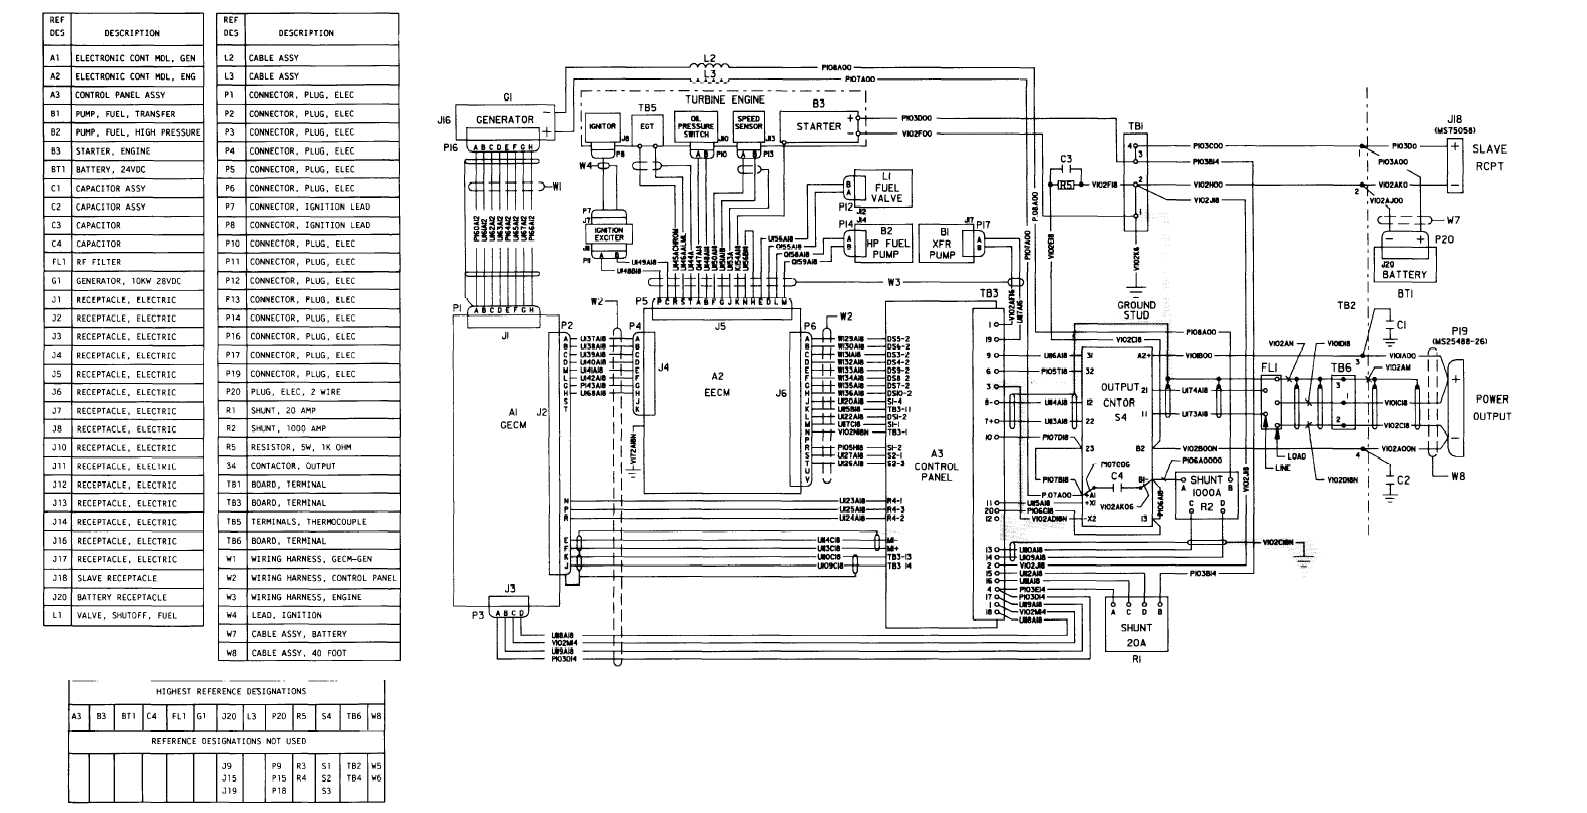 TM 5 6115 612 12_300_1 fo 3 generator set wiring diagram wiring diagram for generators at gsmx.co